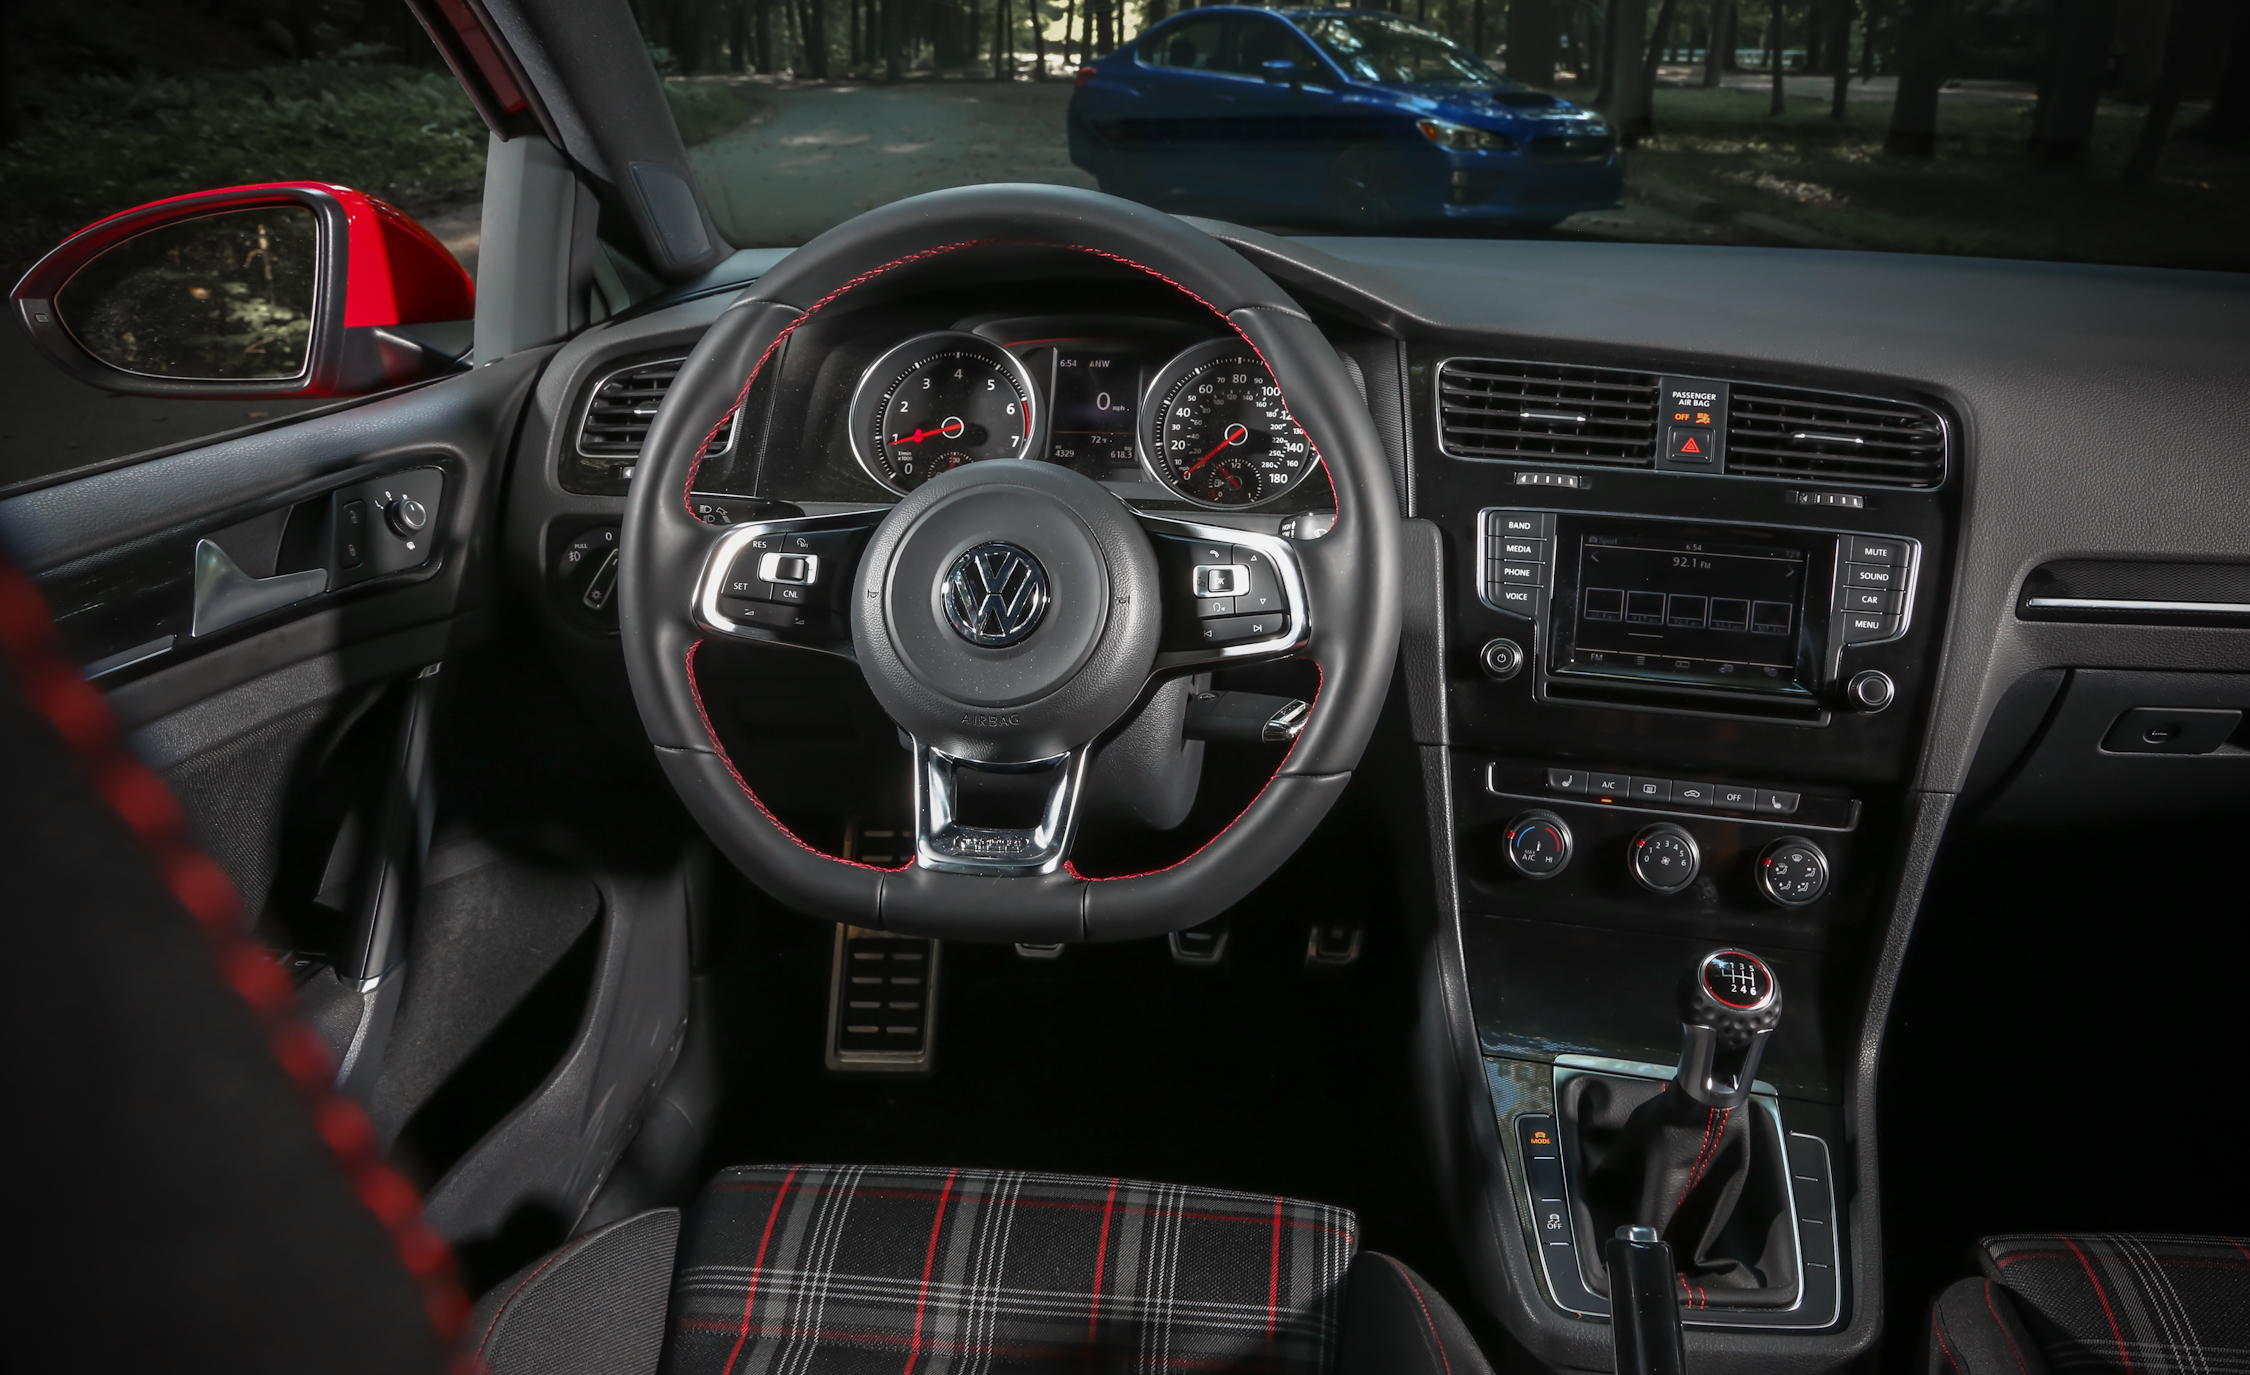 2015 Volkswagen GTI 5 Door Interior (Photo 40 of 55)